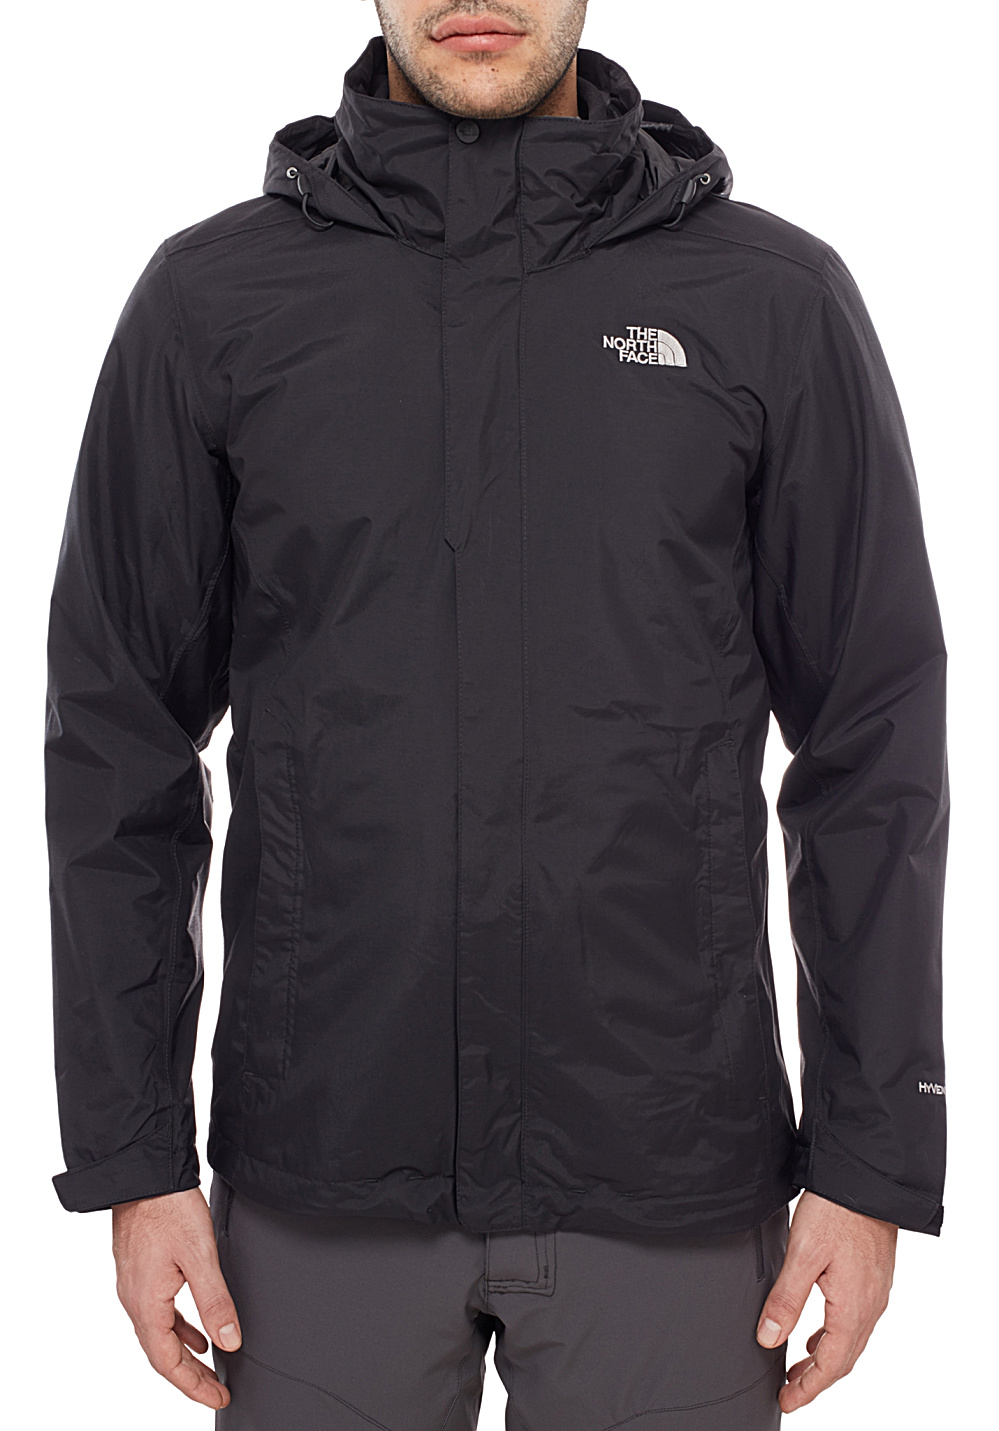 8275d11a8bfdc THE NORTH FACE Evolution II Triclimate - Chubasquero para Hombres ...